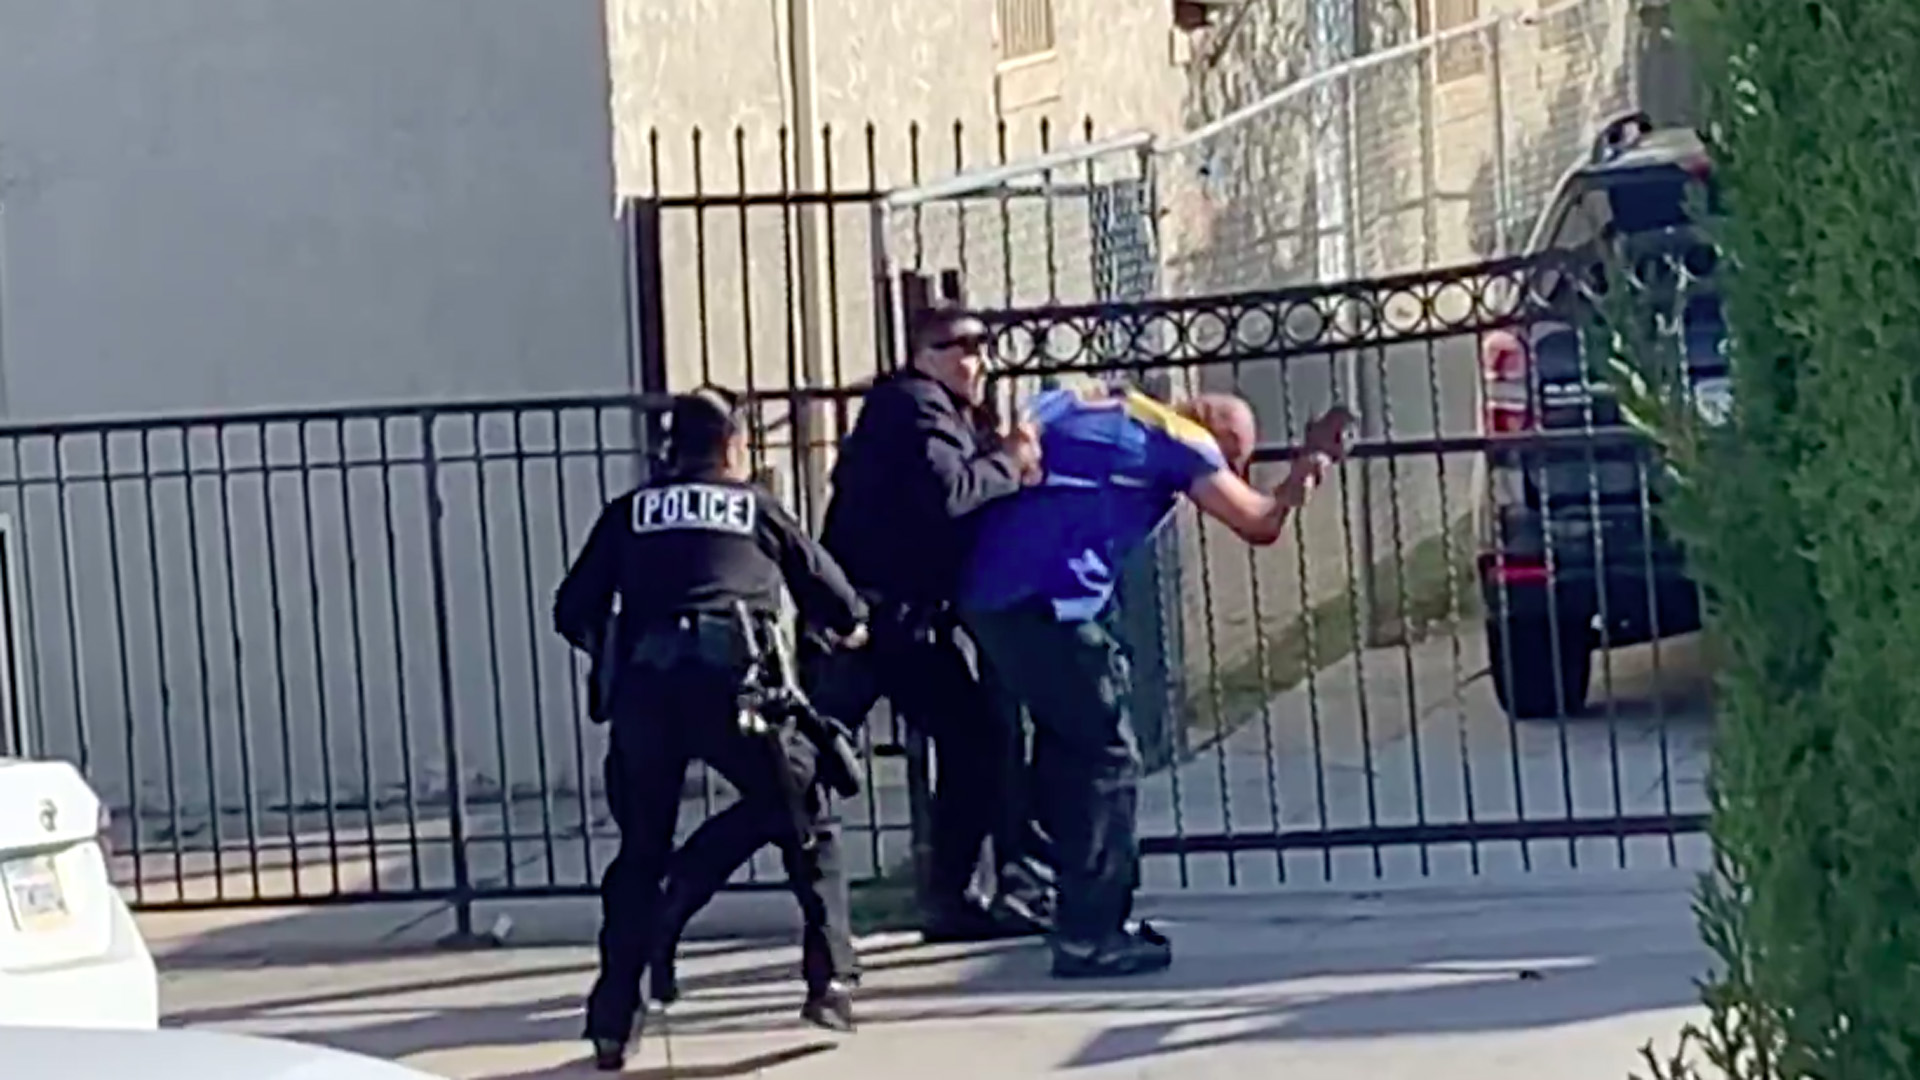 A Los Angeles Police Officer strikes a man in Boyle Heights in a still from a video provided to KTLA on April 5, 2020.